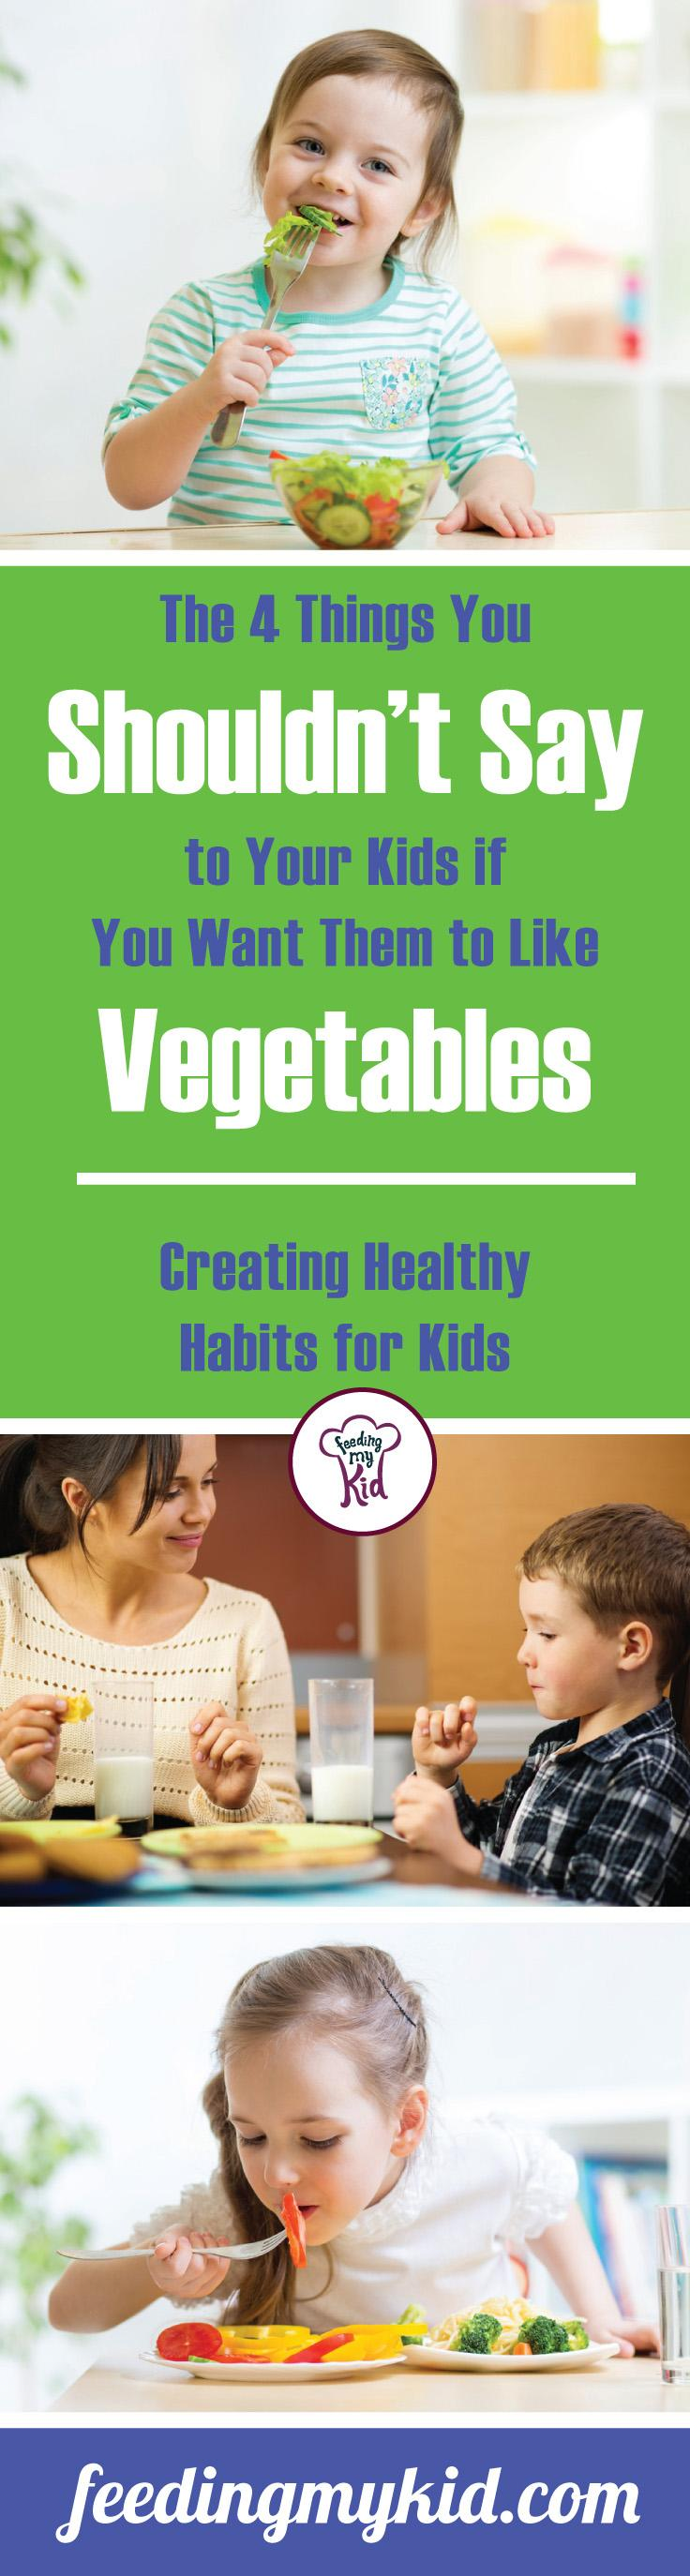 Learn how, with the freedom to experiment on your kid's own terms, your picky eater will grow out of picky eating to become an adventurous foodie! Feeding My Kid is a filled with all the information you need about how to raise your kids, from healthy tips to nutritious recipes. #fmk #parenting #pickyeating